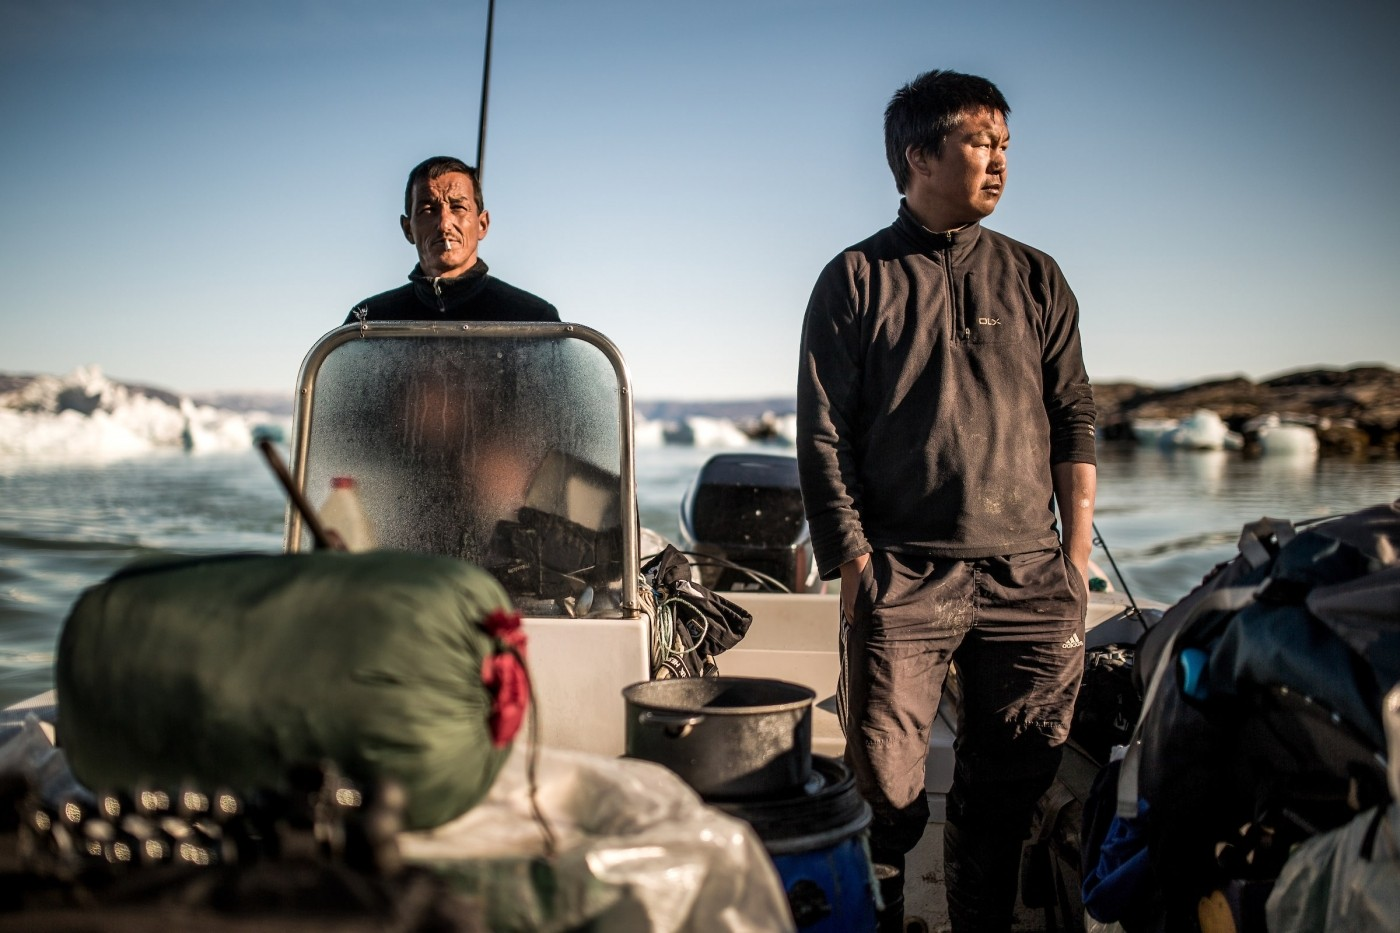 Two camp managers on a Greenland Travel trek in East Greenland. Photo by Mads Pihl - Visit Greenland